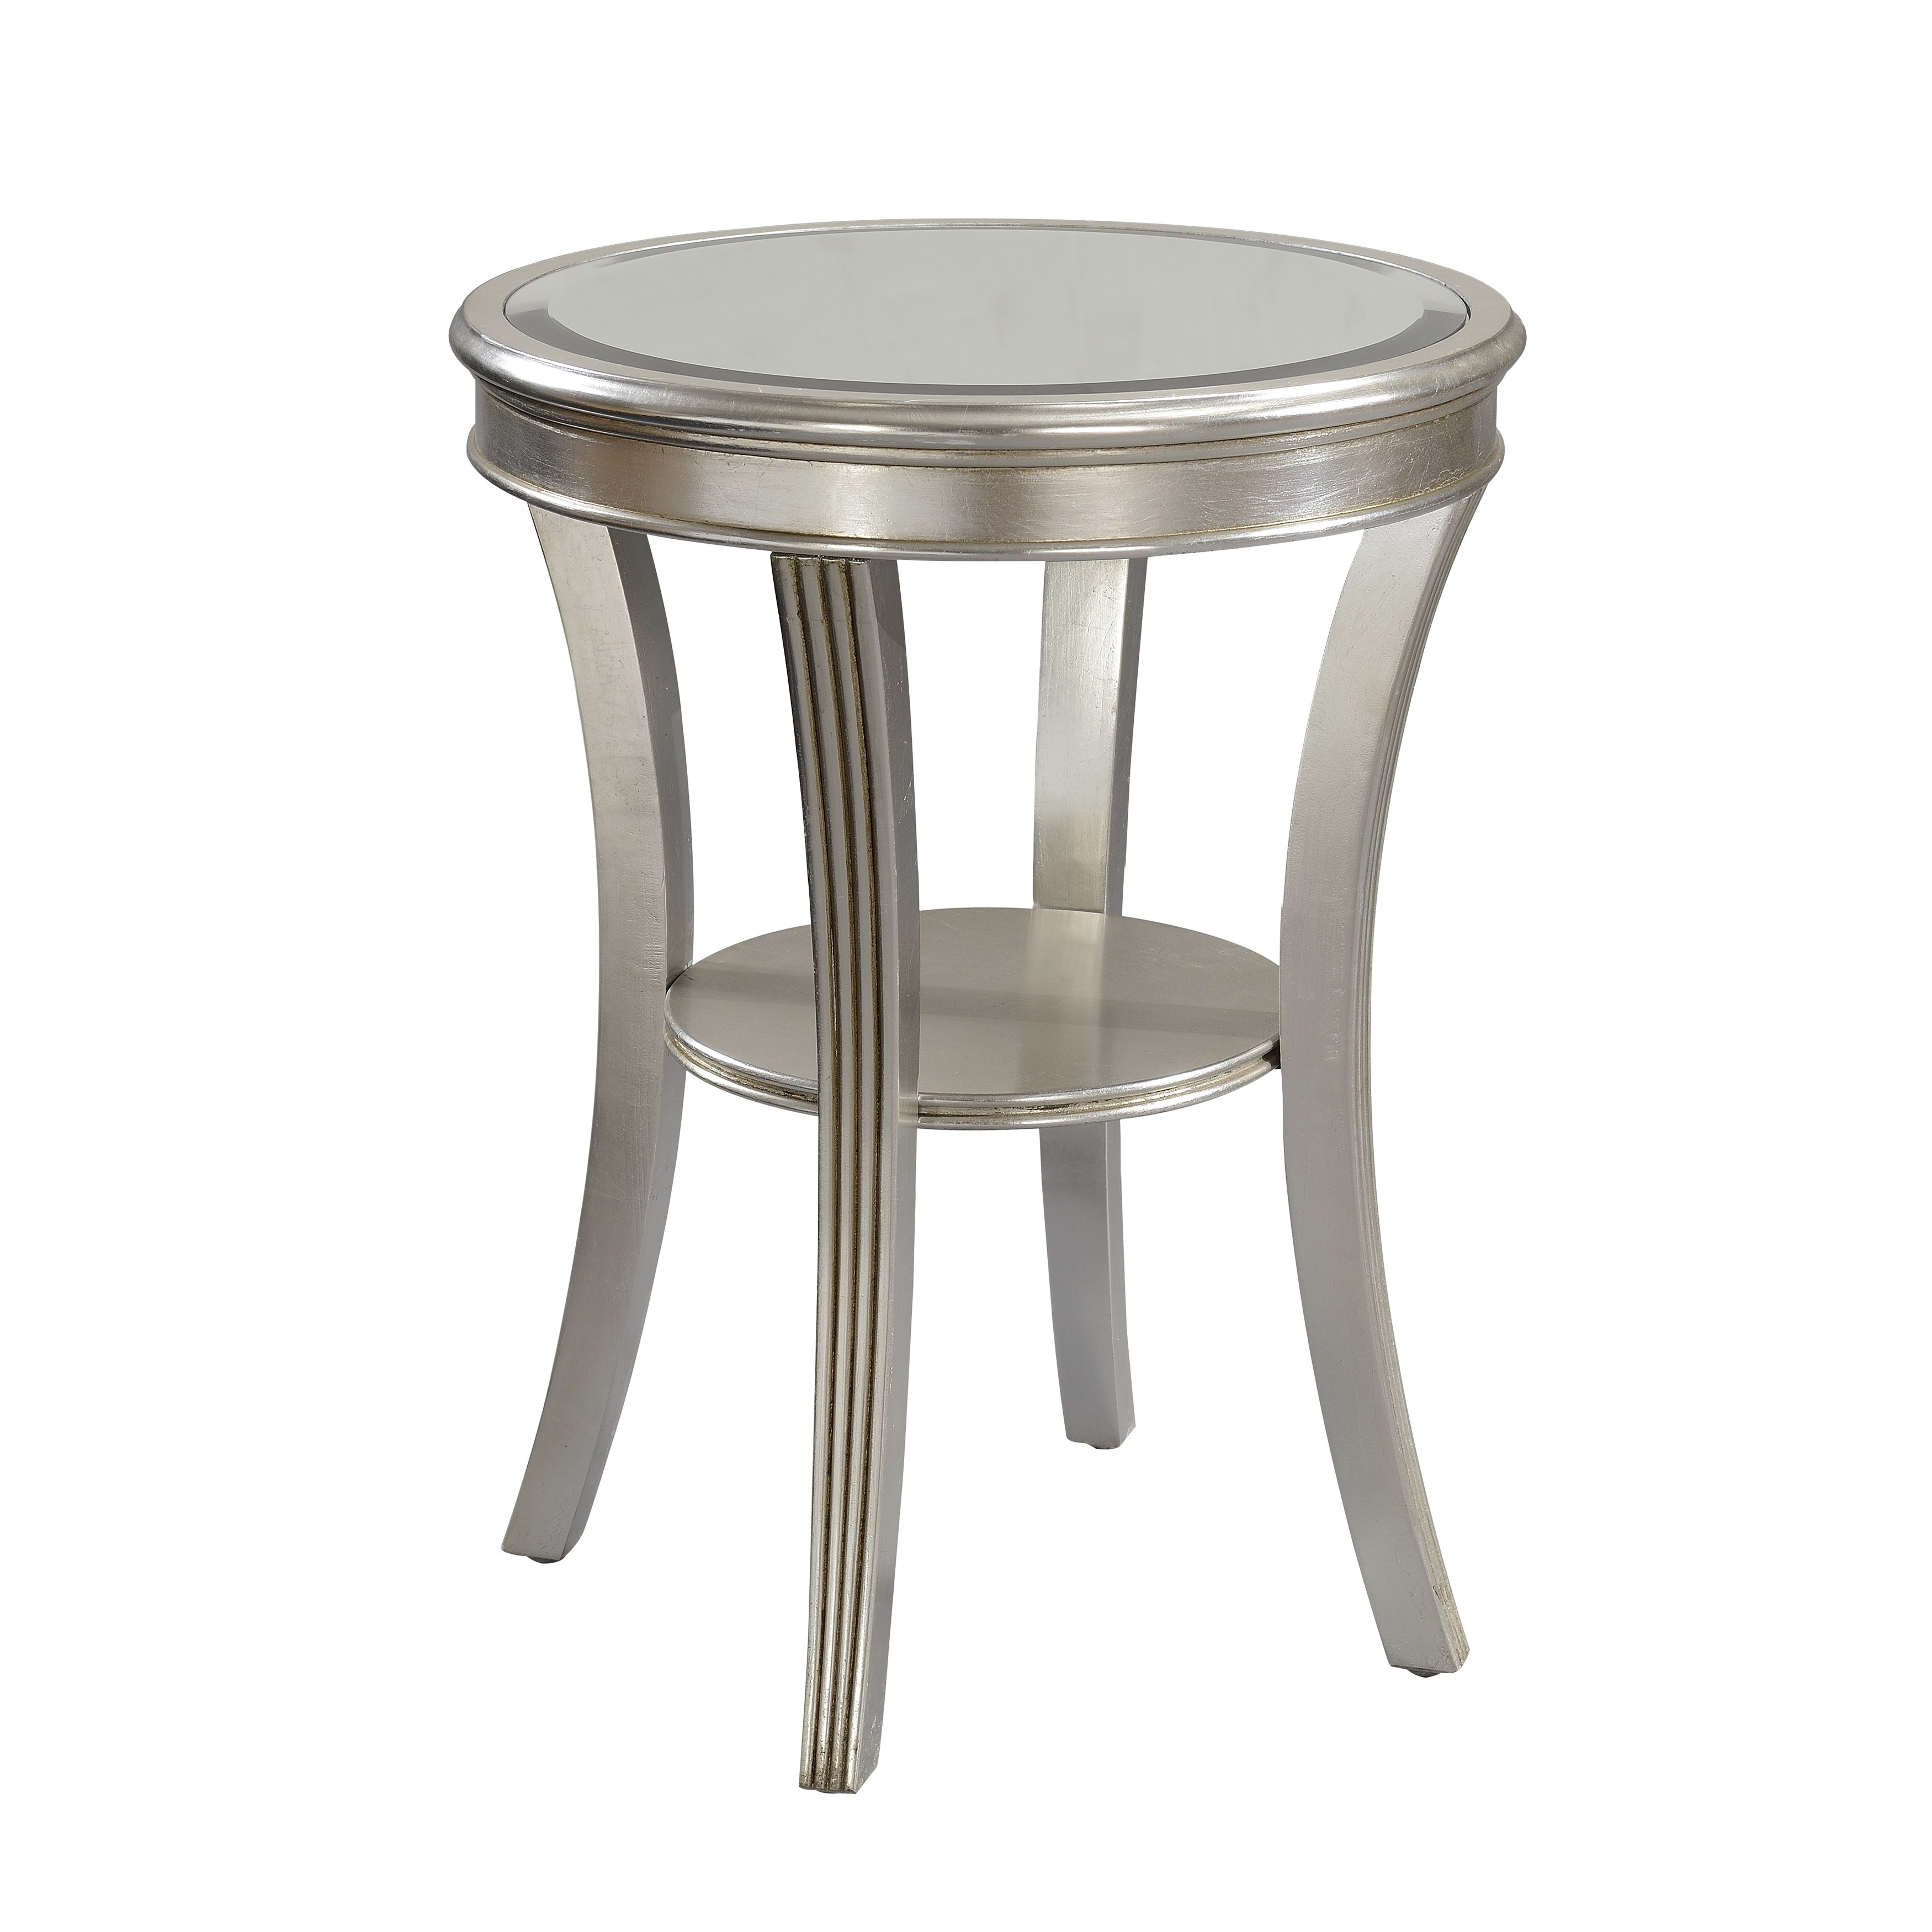 christopher knight home round silver accent table free shipping today outdoor umbrella weights black wood side tall mirrored chest drawers perspex industrial end with drawer